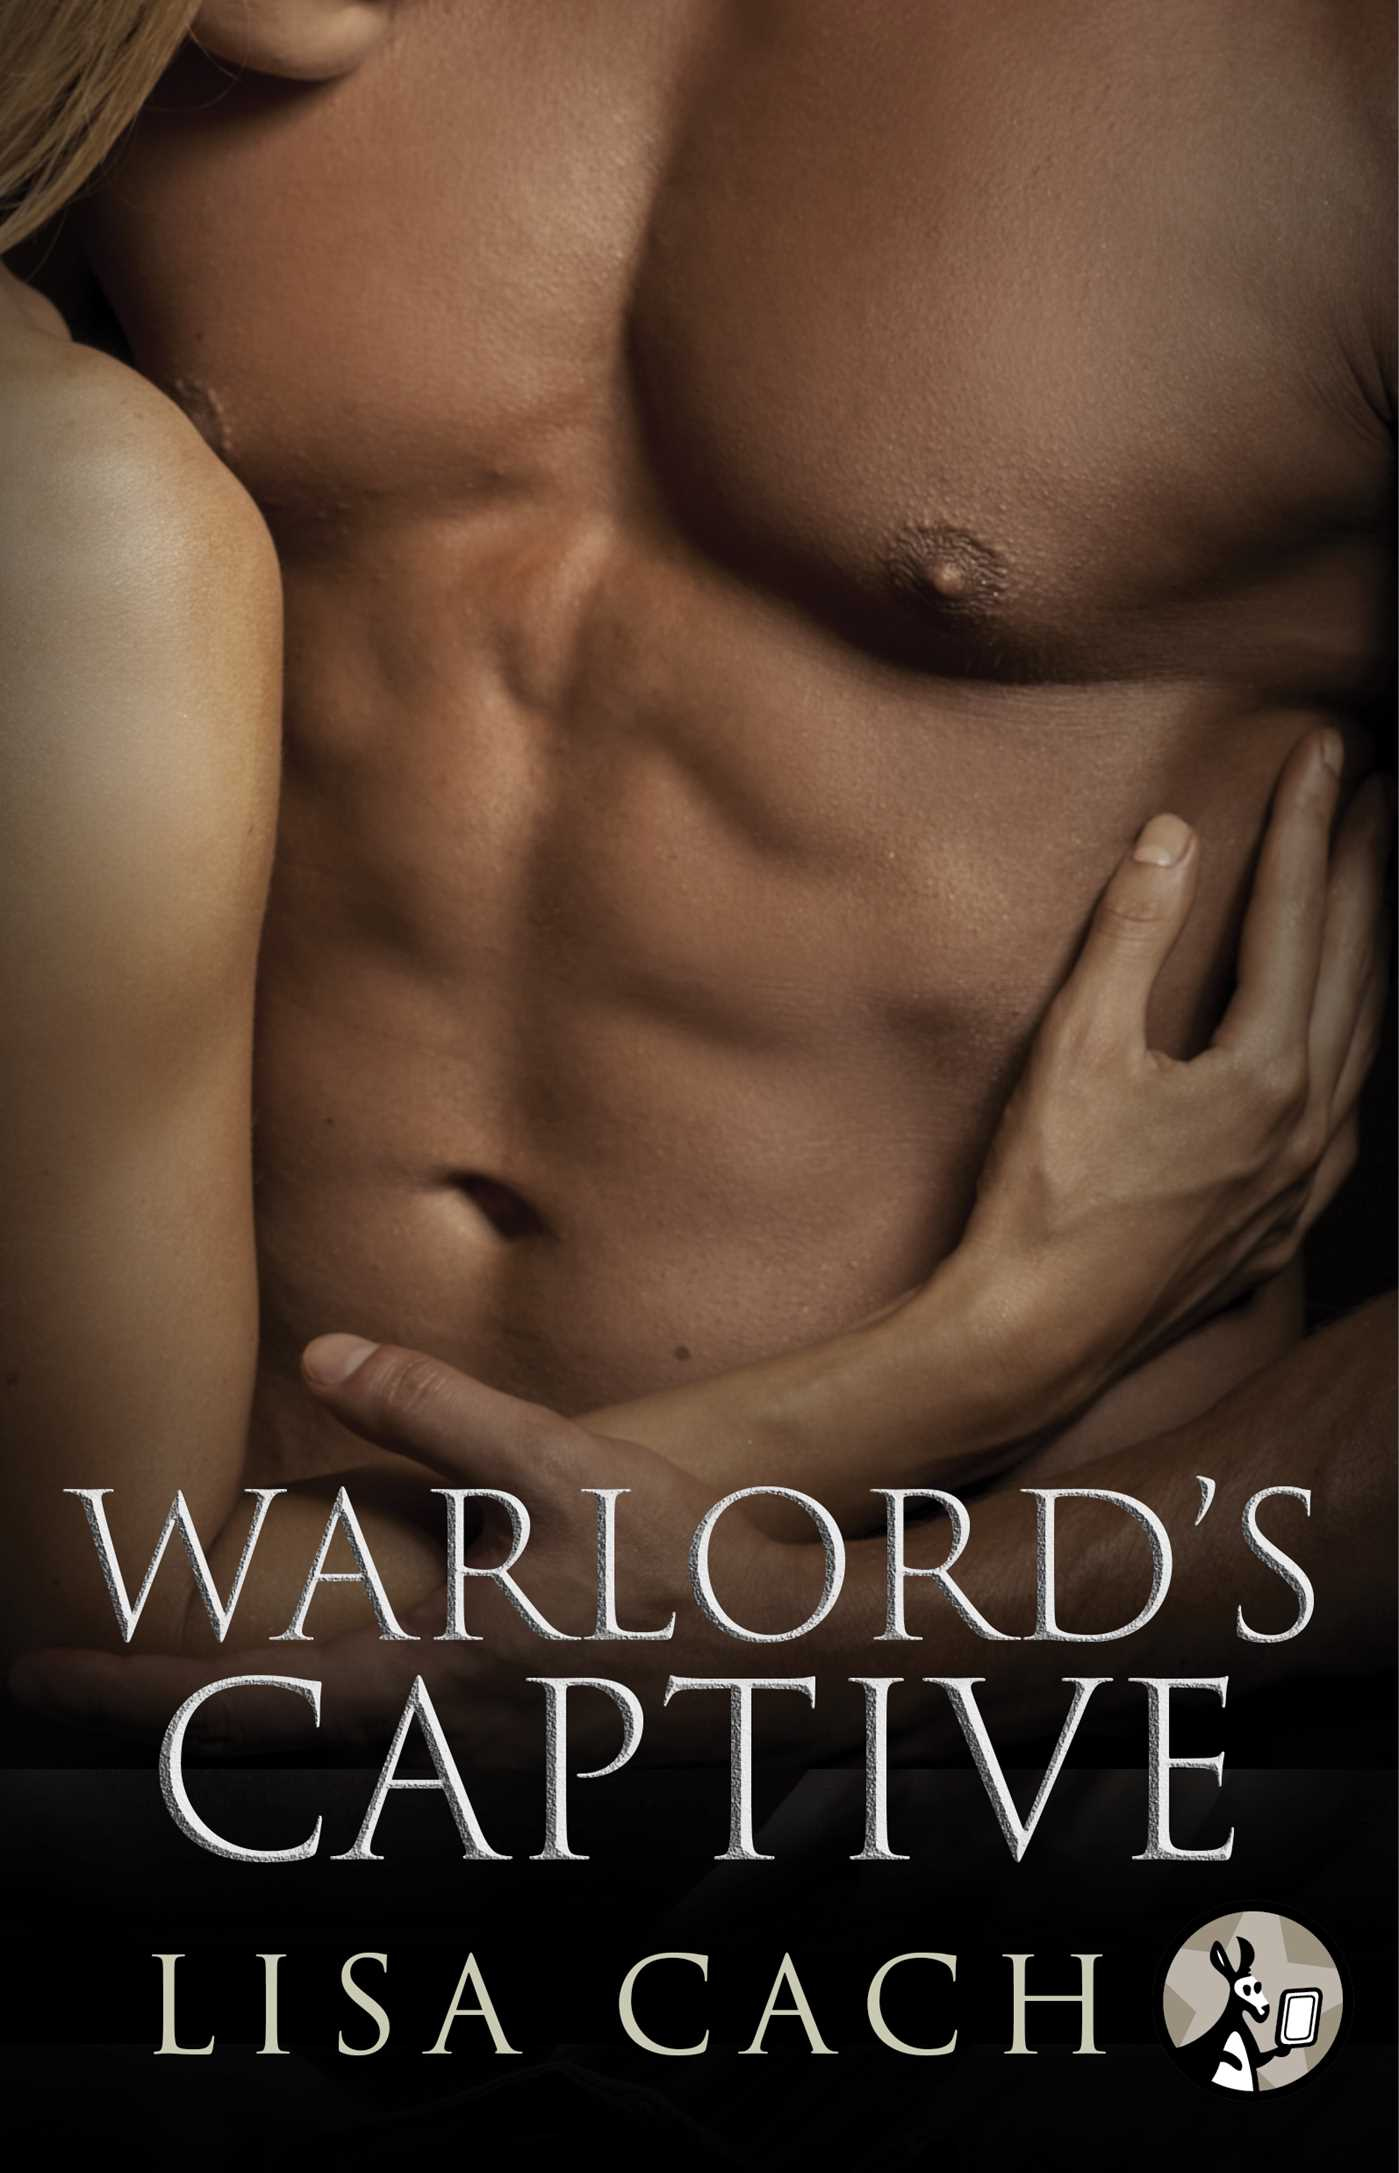 Warlords captive 9781501110153 hr